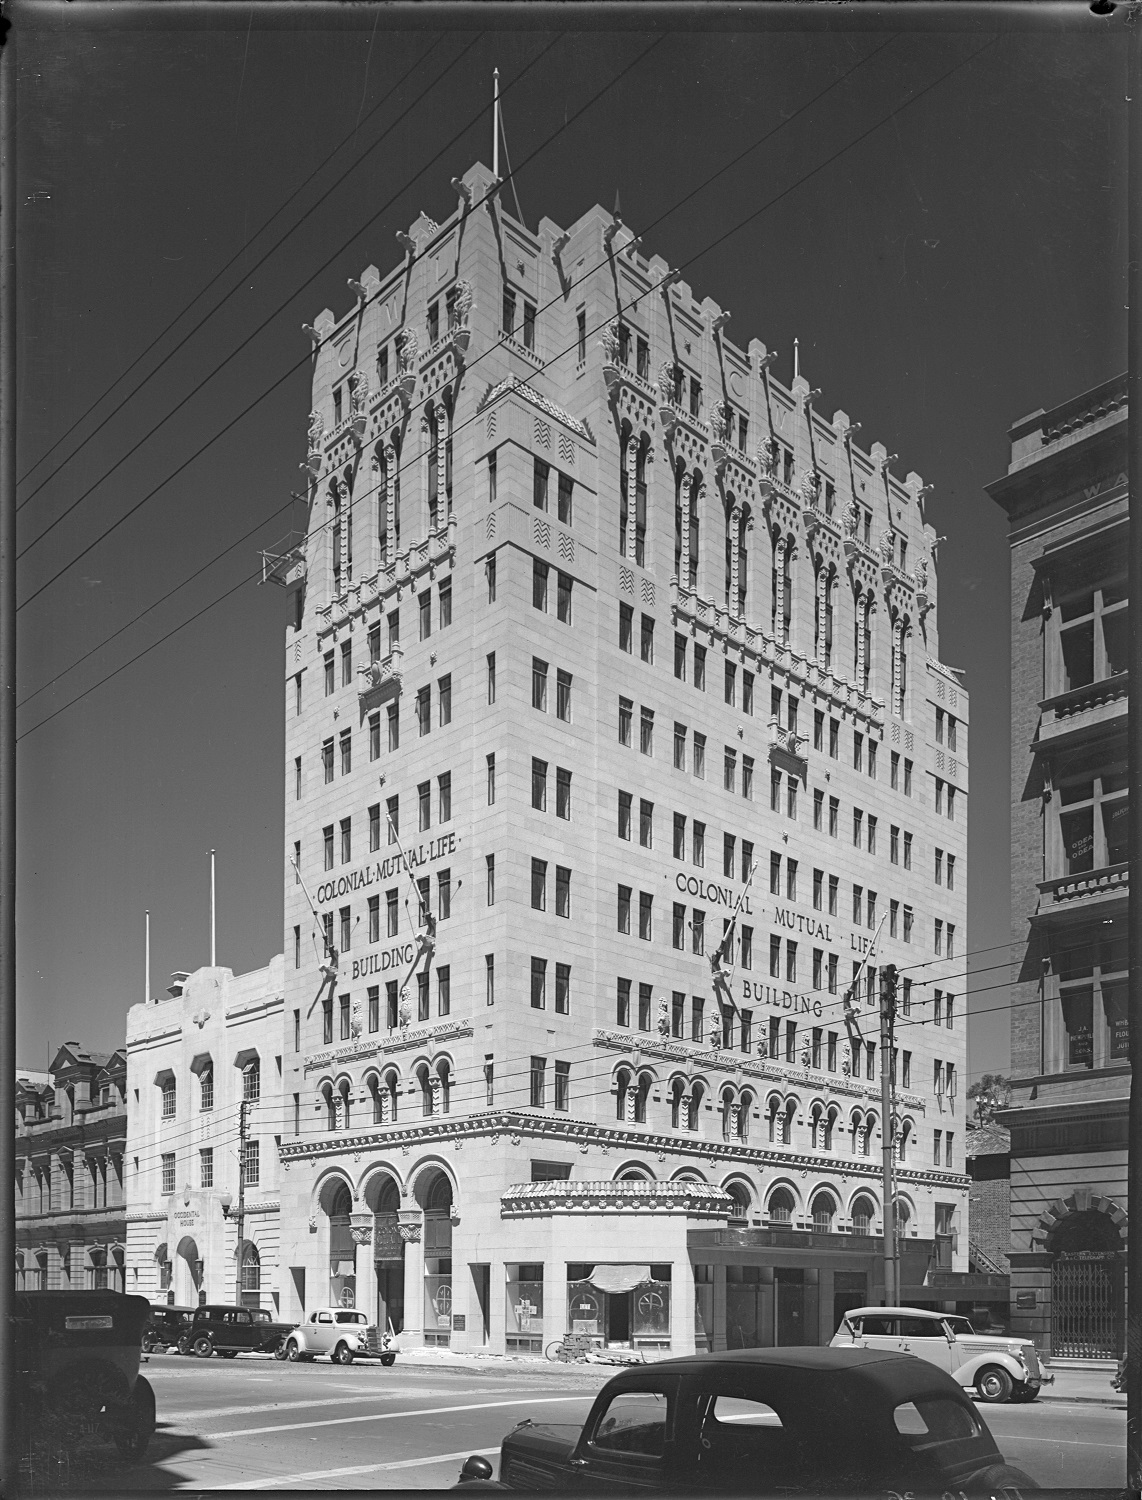 Colonial Mutual Life Building, 55 St George's Terrace, Perth, 11 October 1936